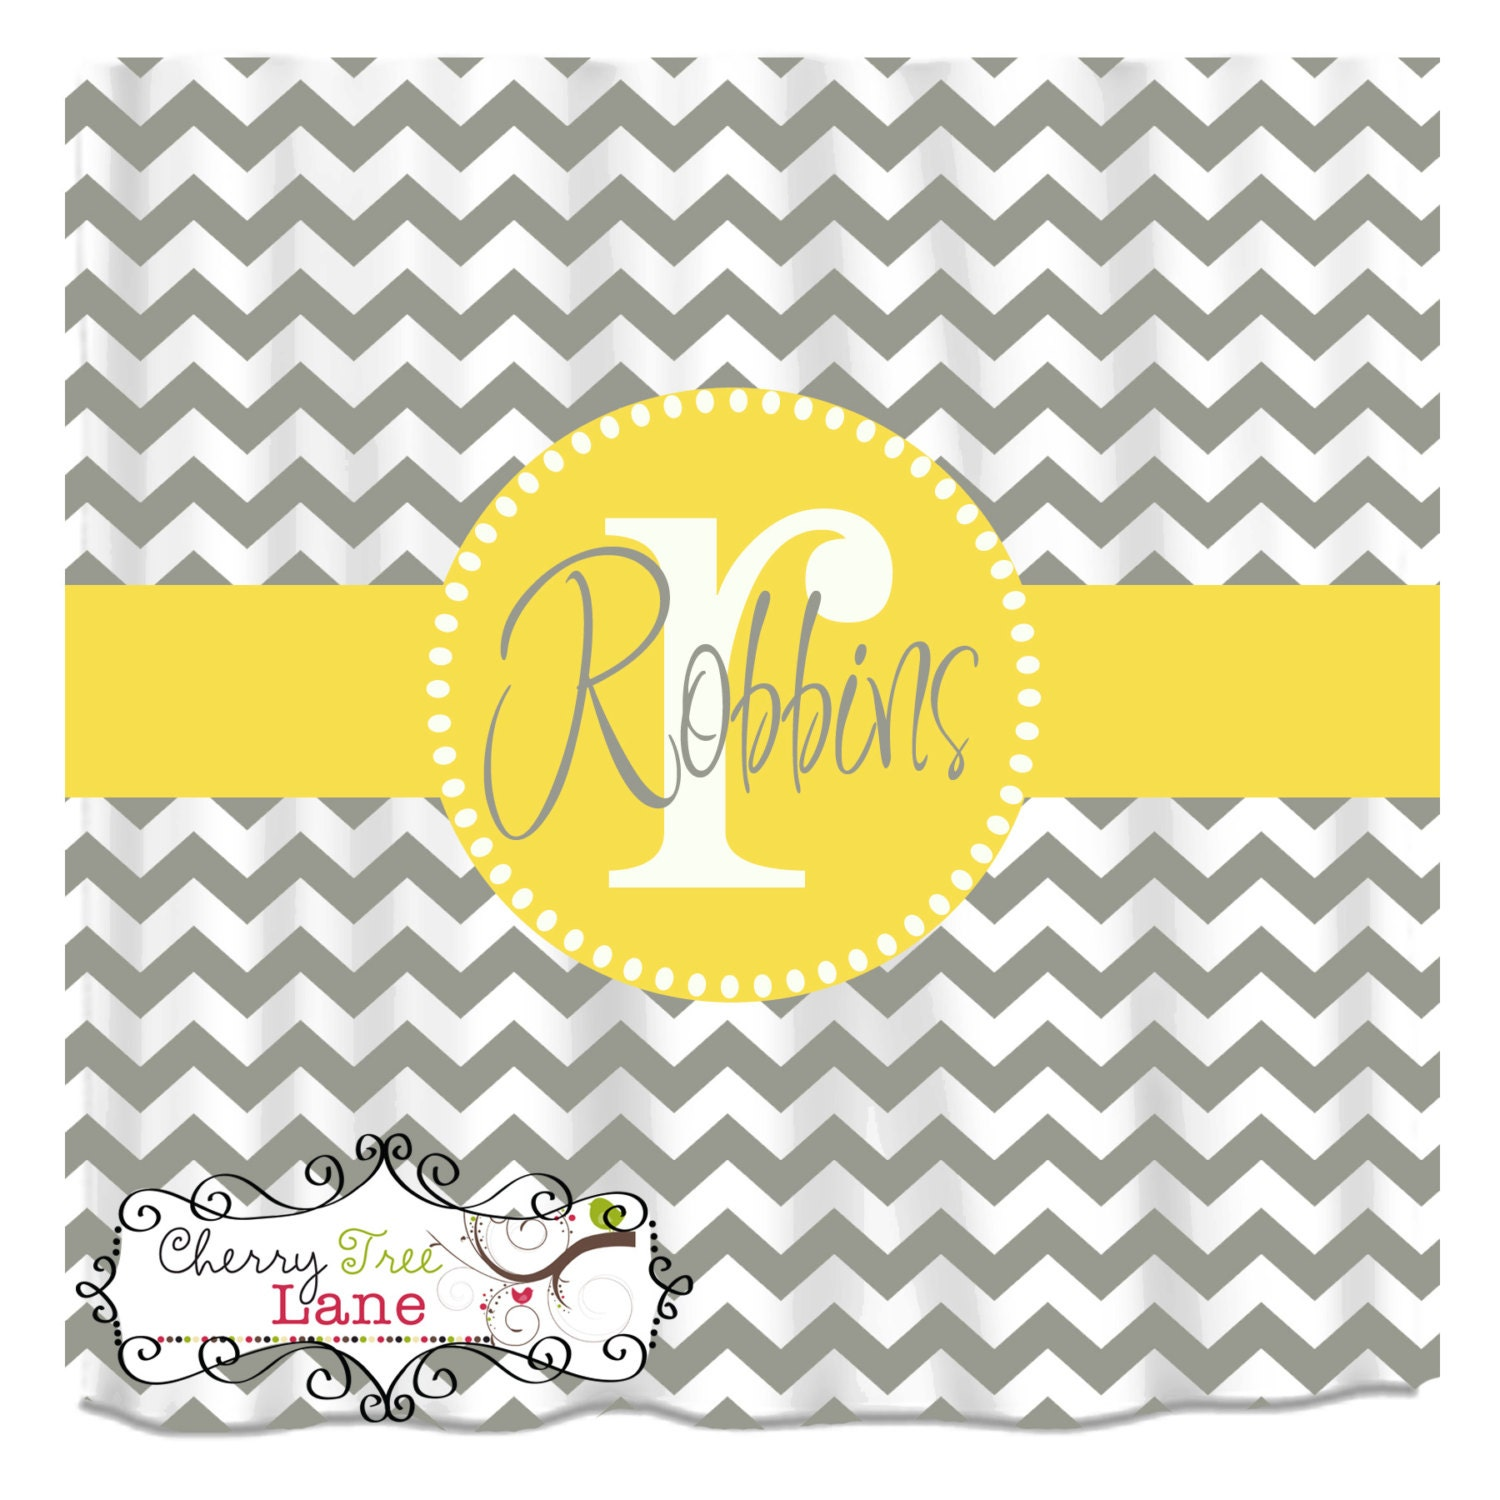 Grey Chevron Shower Curtain Personalized By Cherrytreelanedesign